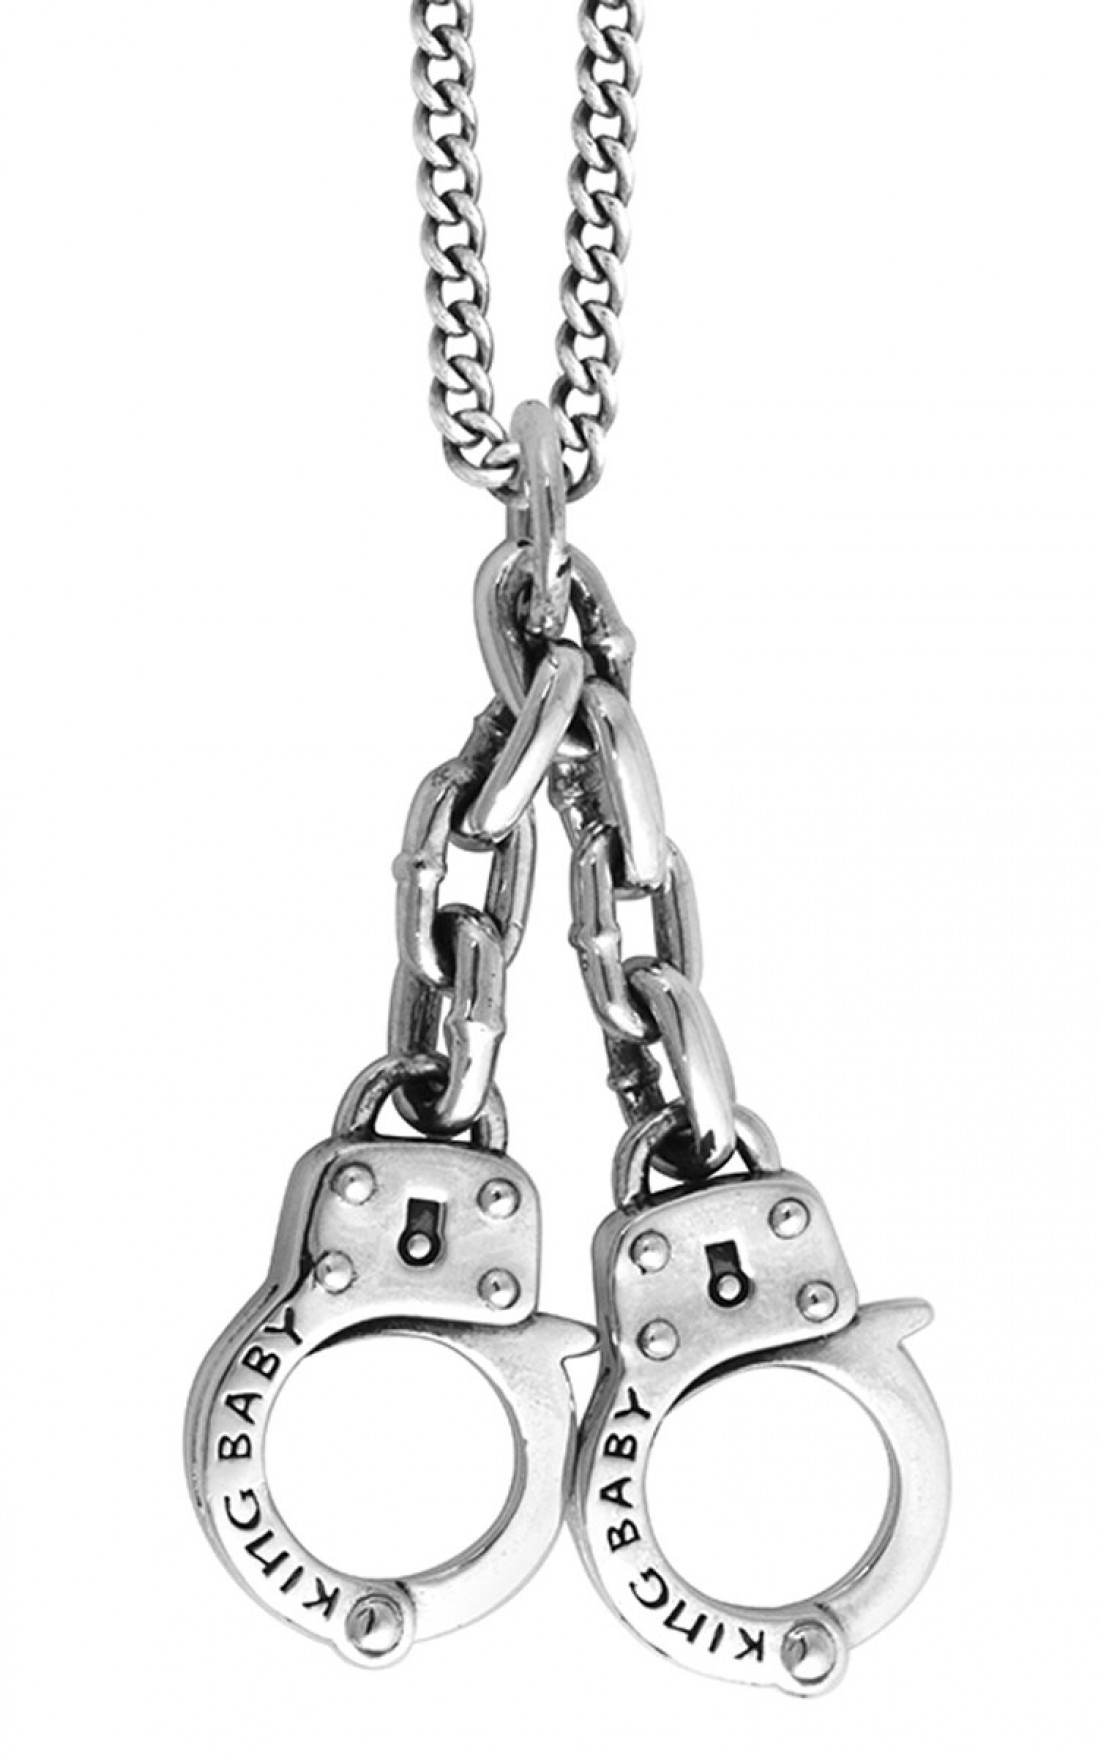 King baby mens large handcuff pendant king baby pendant online king baby large handcuff pendant k10 5465 aloadofball Image collections